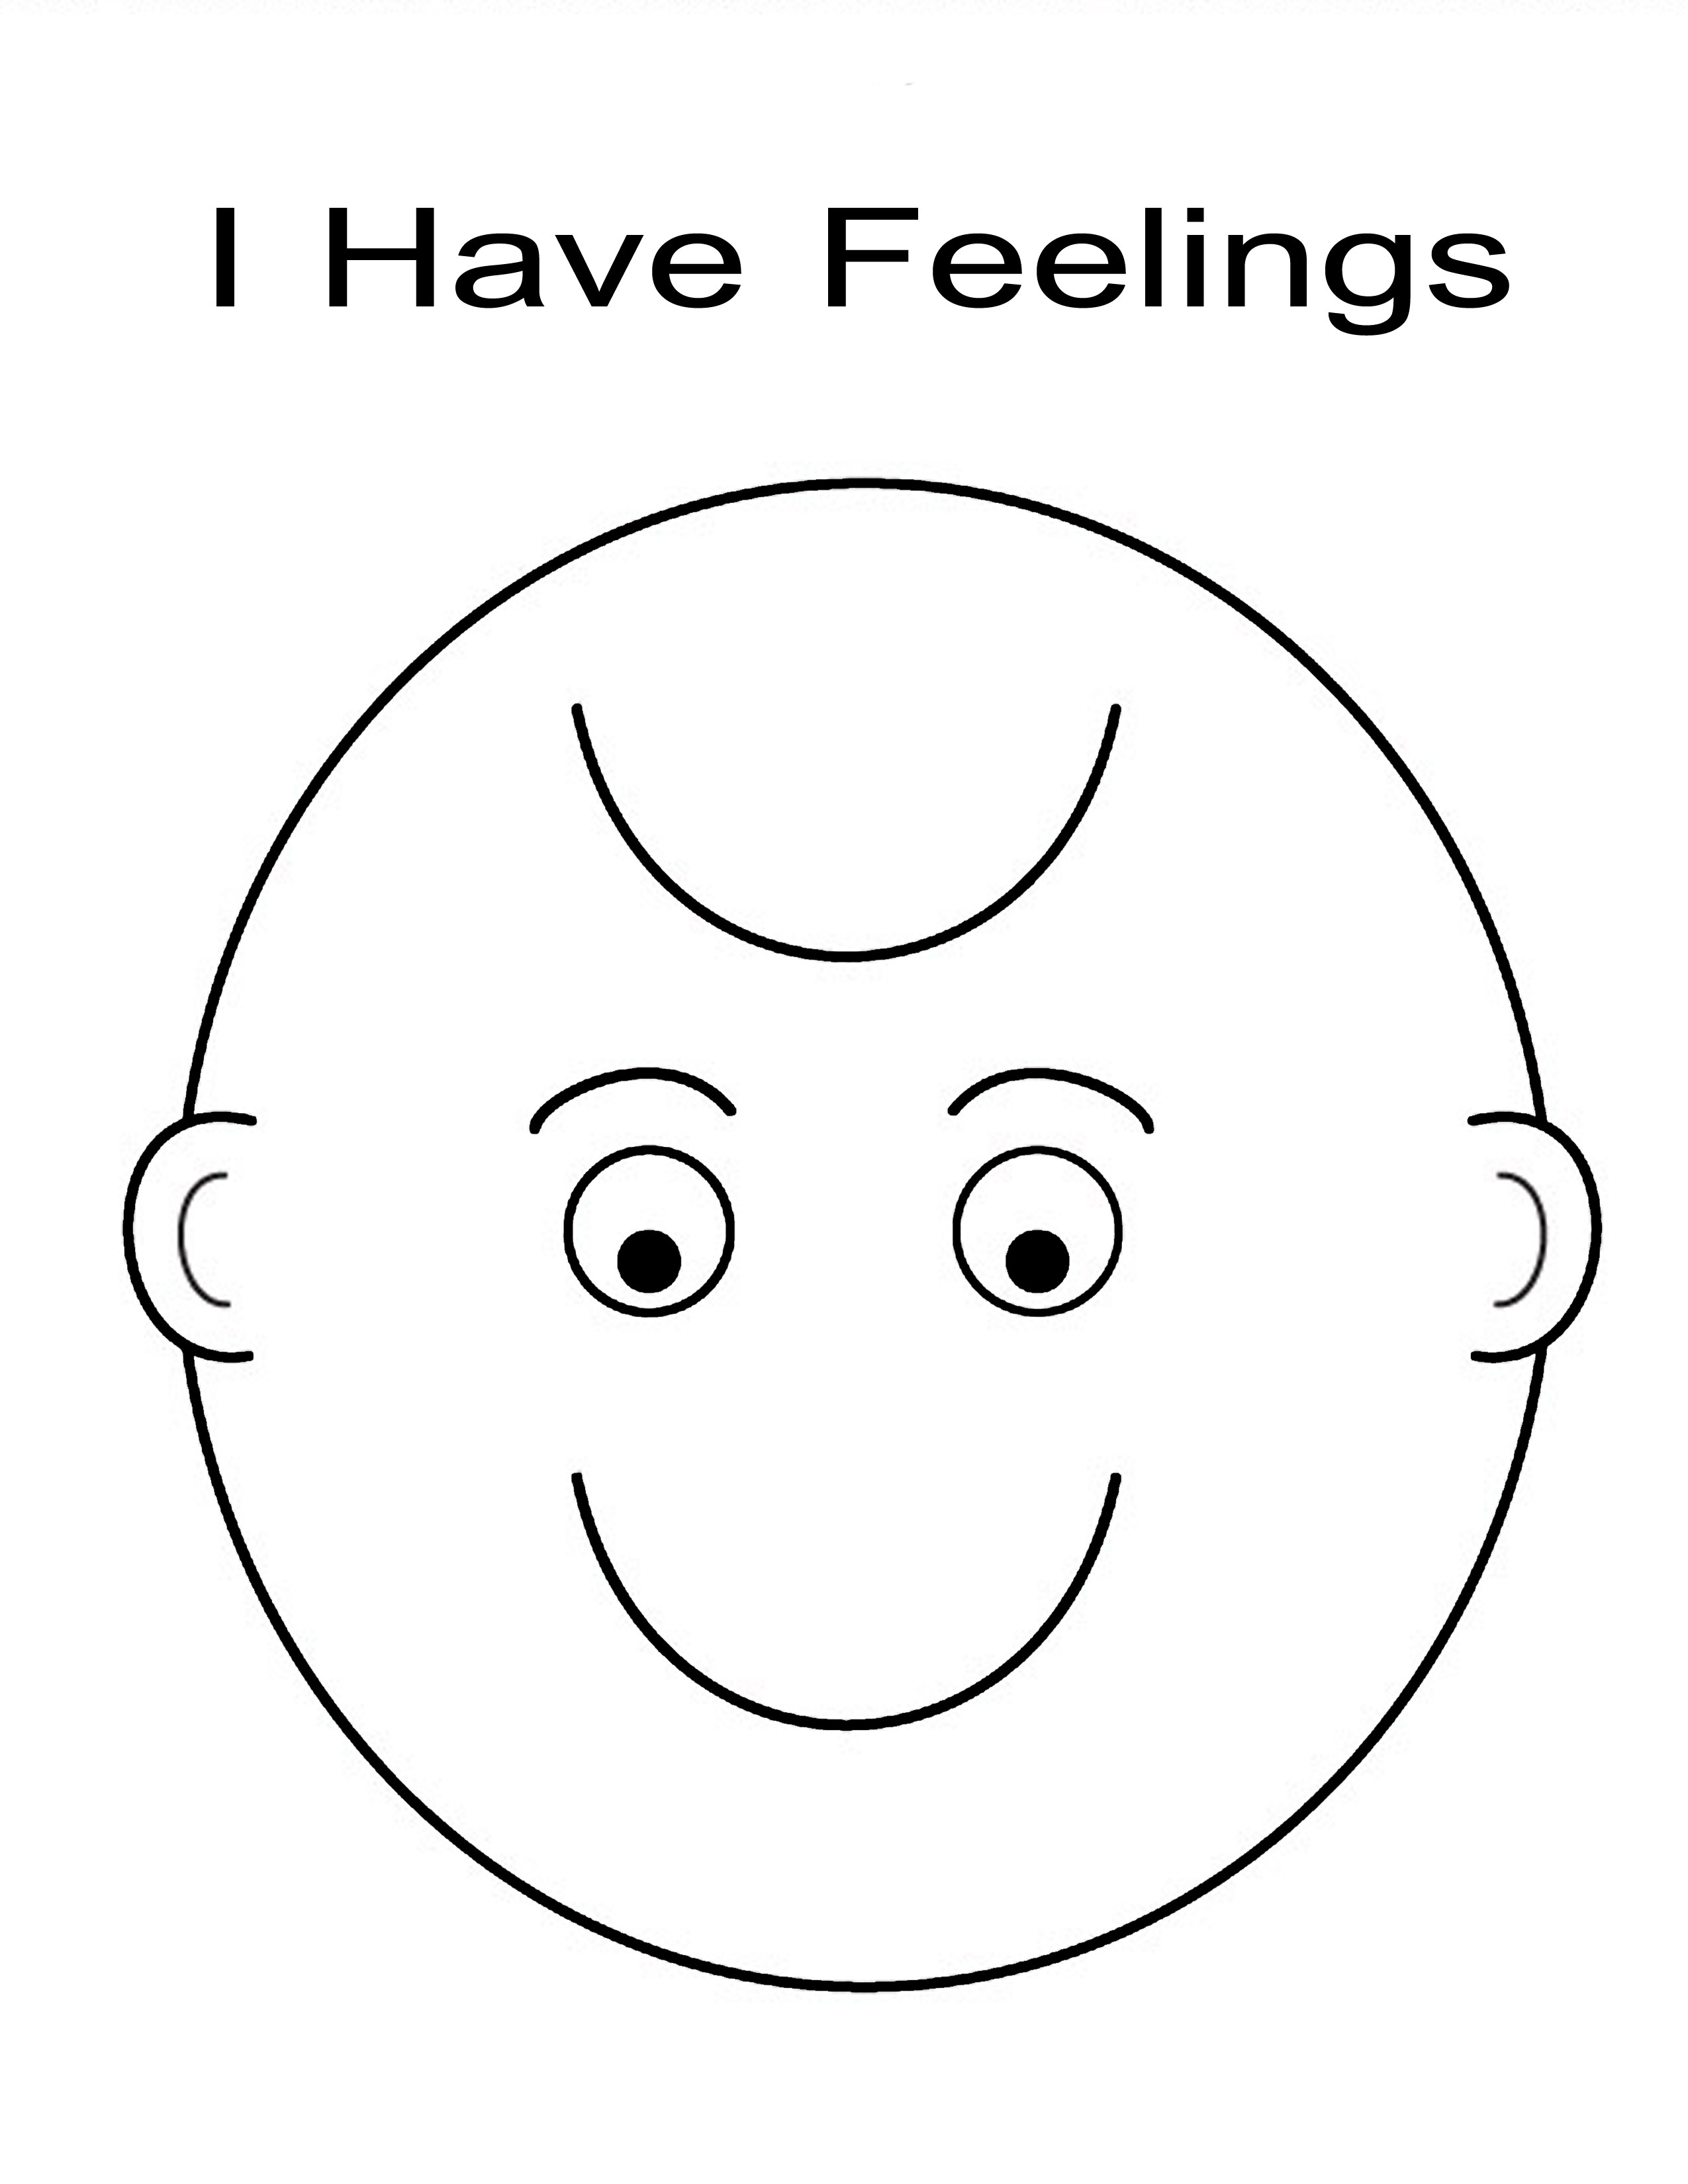 emotions coloring pages emotions coloring pages coloring pages to download and print emotions pages coloring